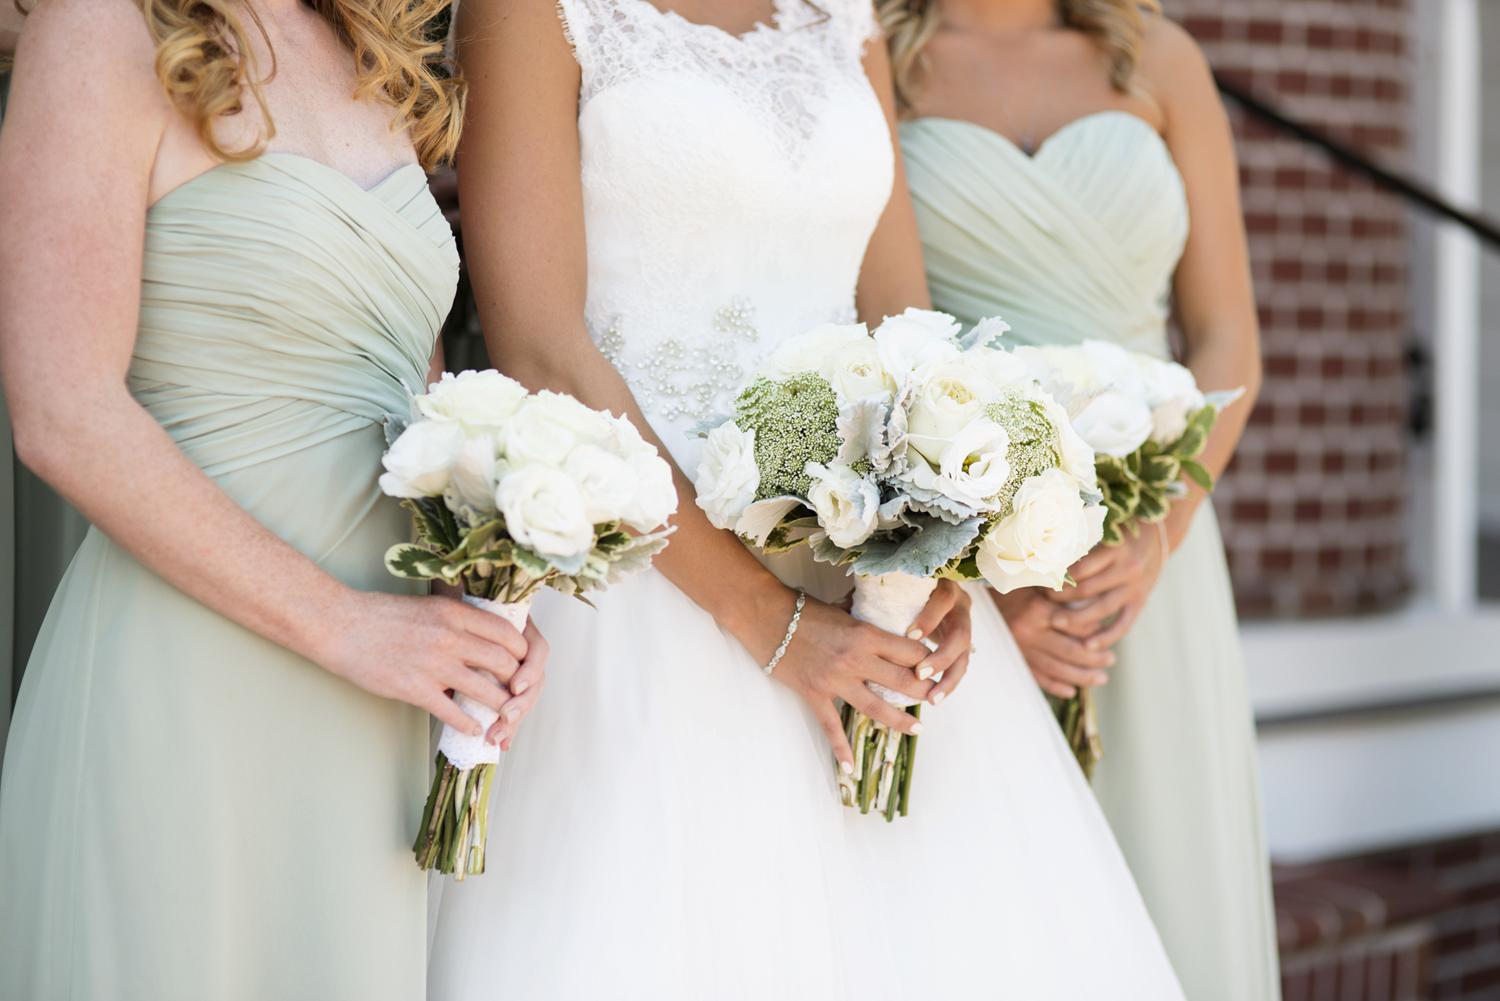 Bridal and bridesmaid's mint green and ivory white bouquets | Portsmouth Woman's Club in Virginia